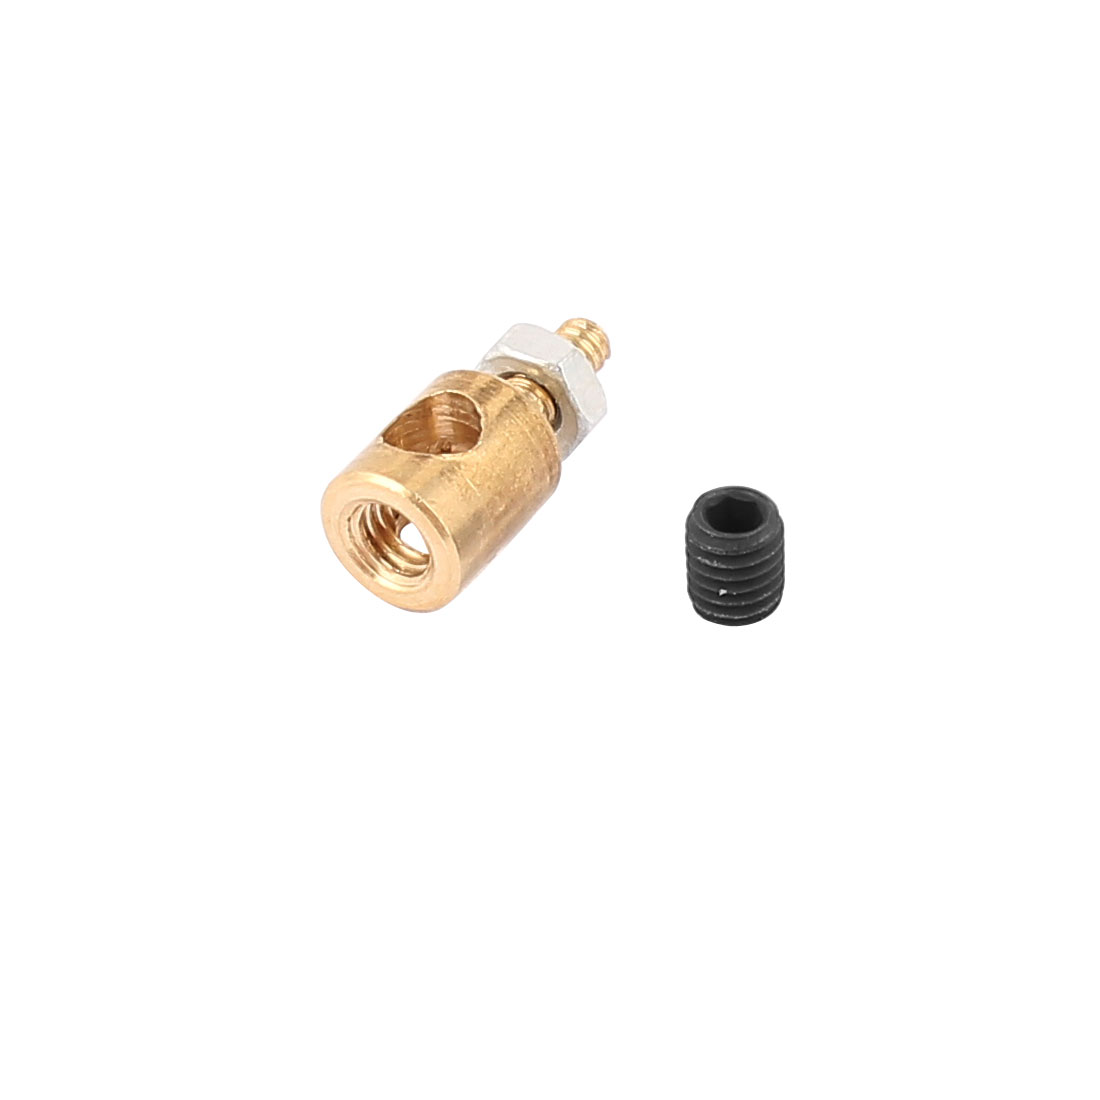 5mmx3.0mm Metal RC Airplane Stopper Servo Connectors with Screws Nuts